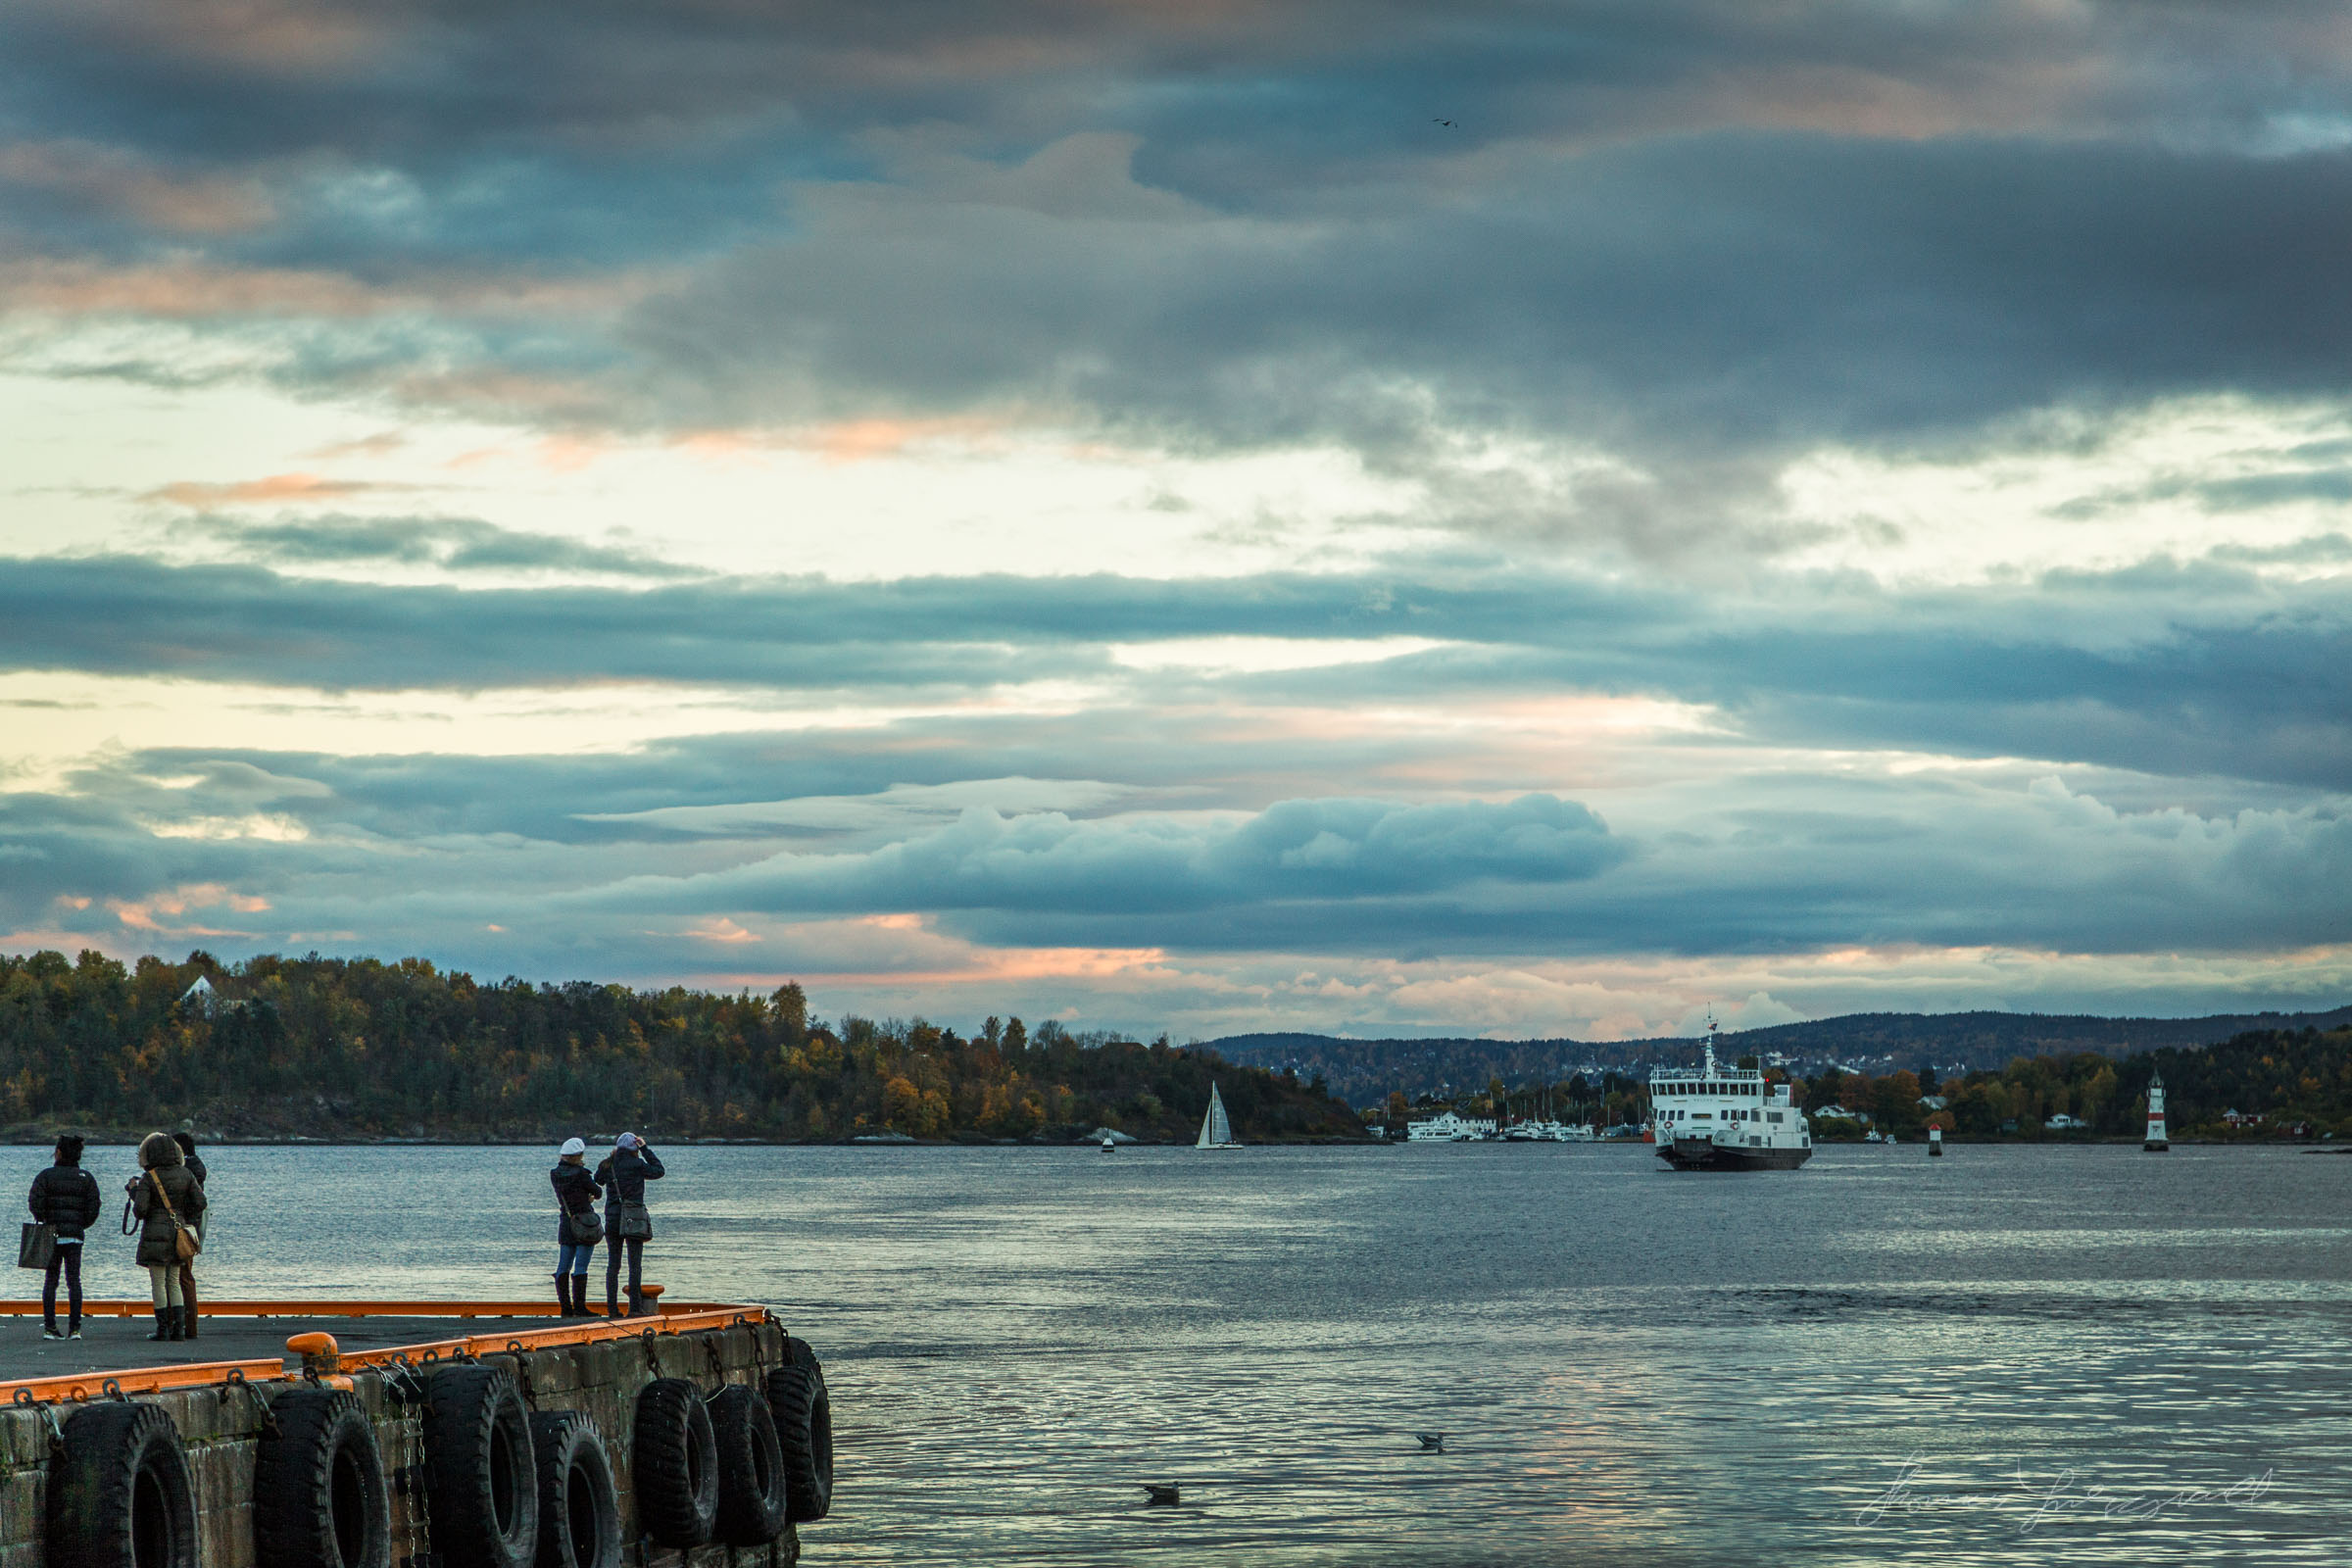 Ferry aproaching the harbour in Oslo, Norway